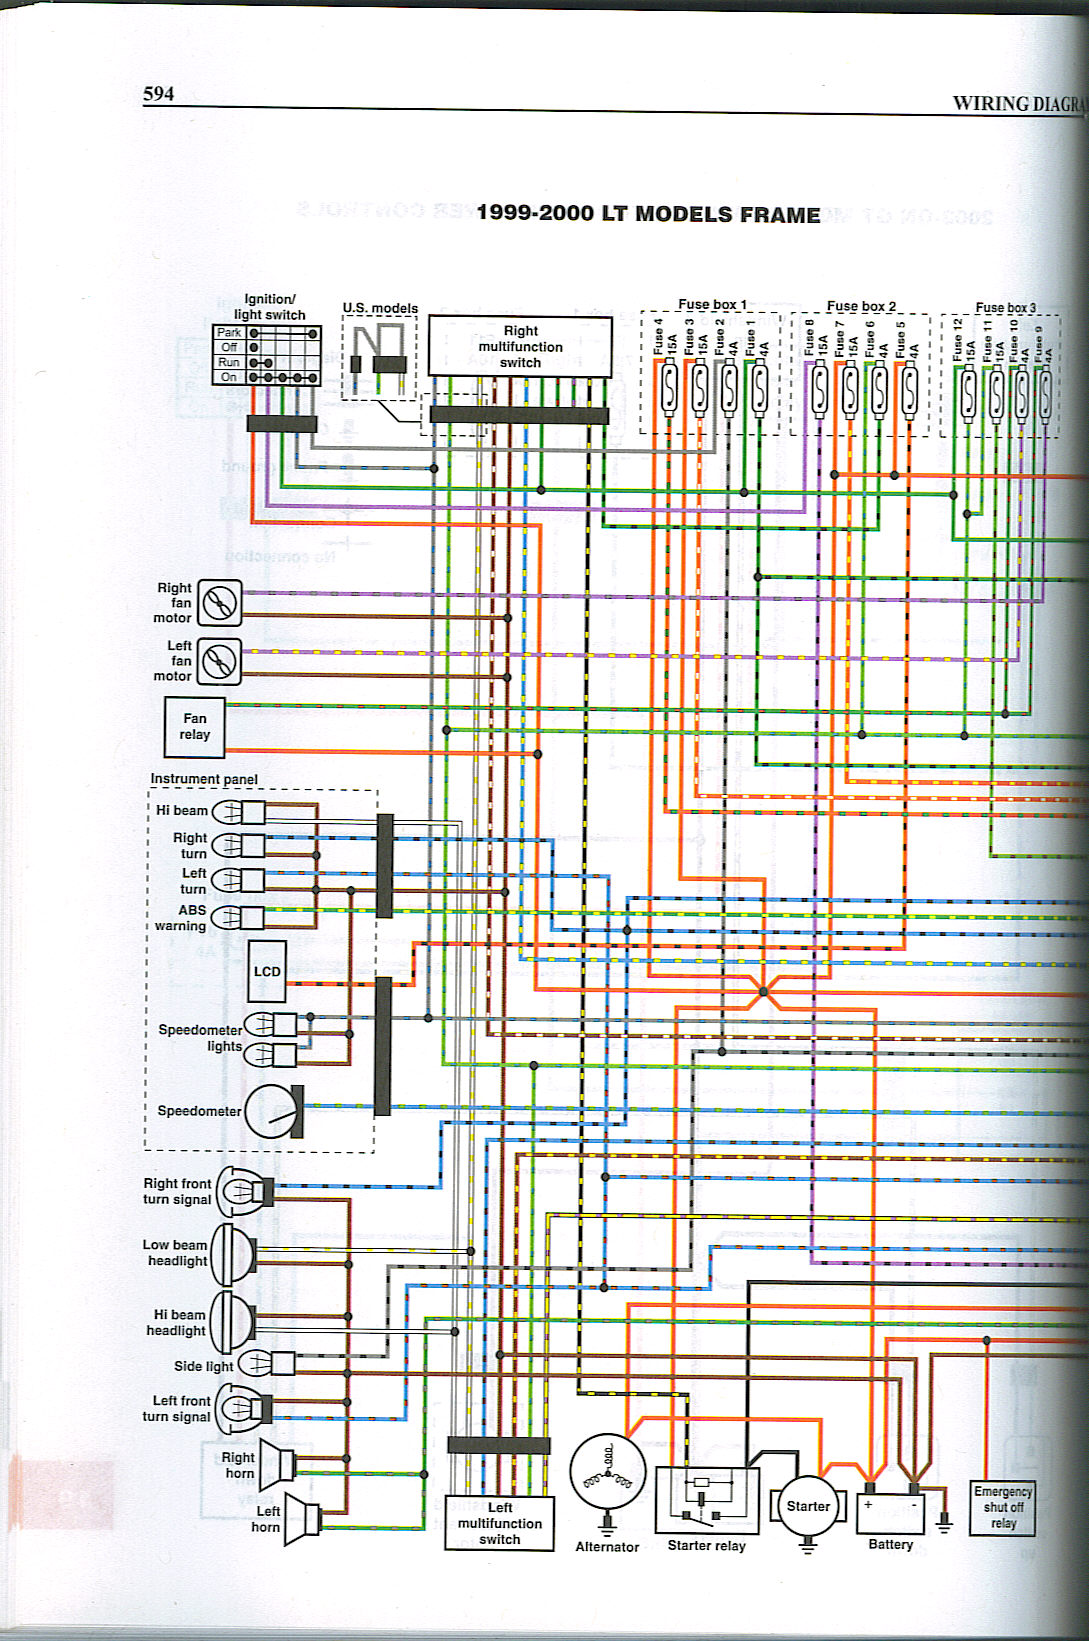 Anybody got a wiring diagram? | BMW Luxury Touring Community BMW Luxury Touring Community